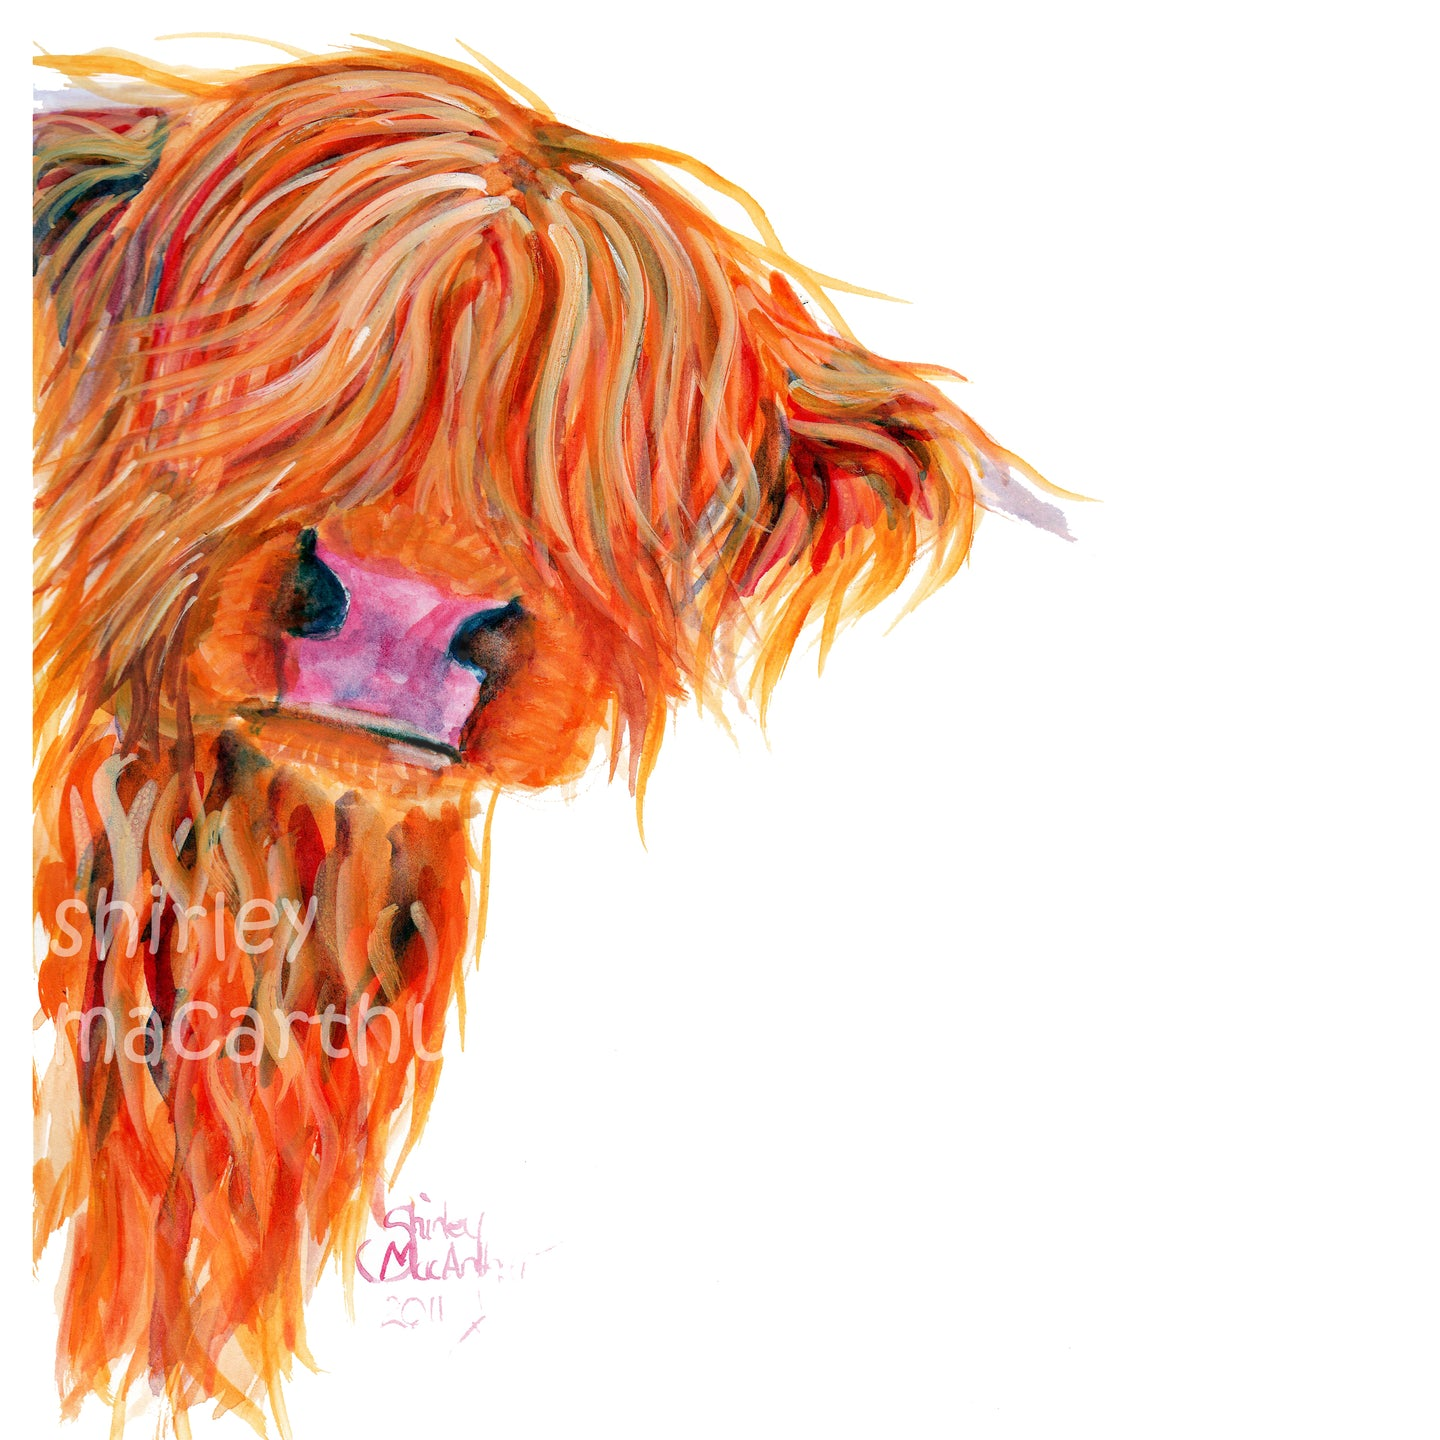 Highland Cow Prints 'Peekaboo' by Shirley MacArthur